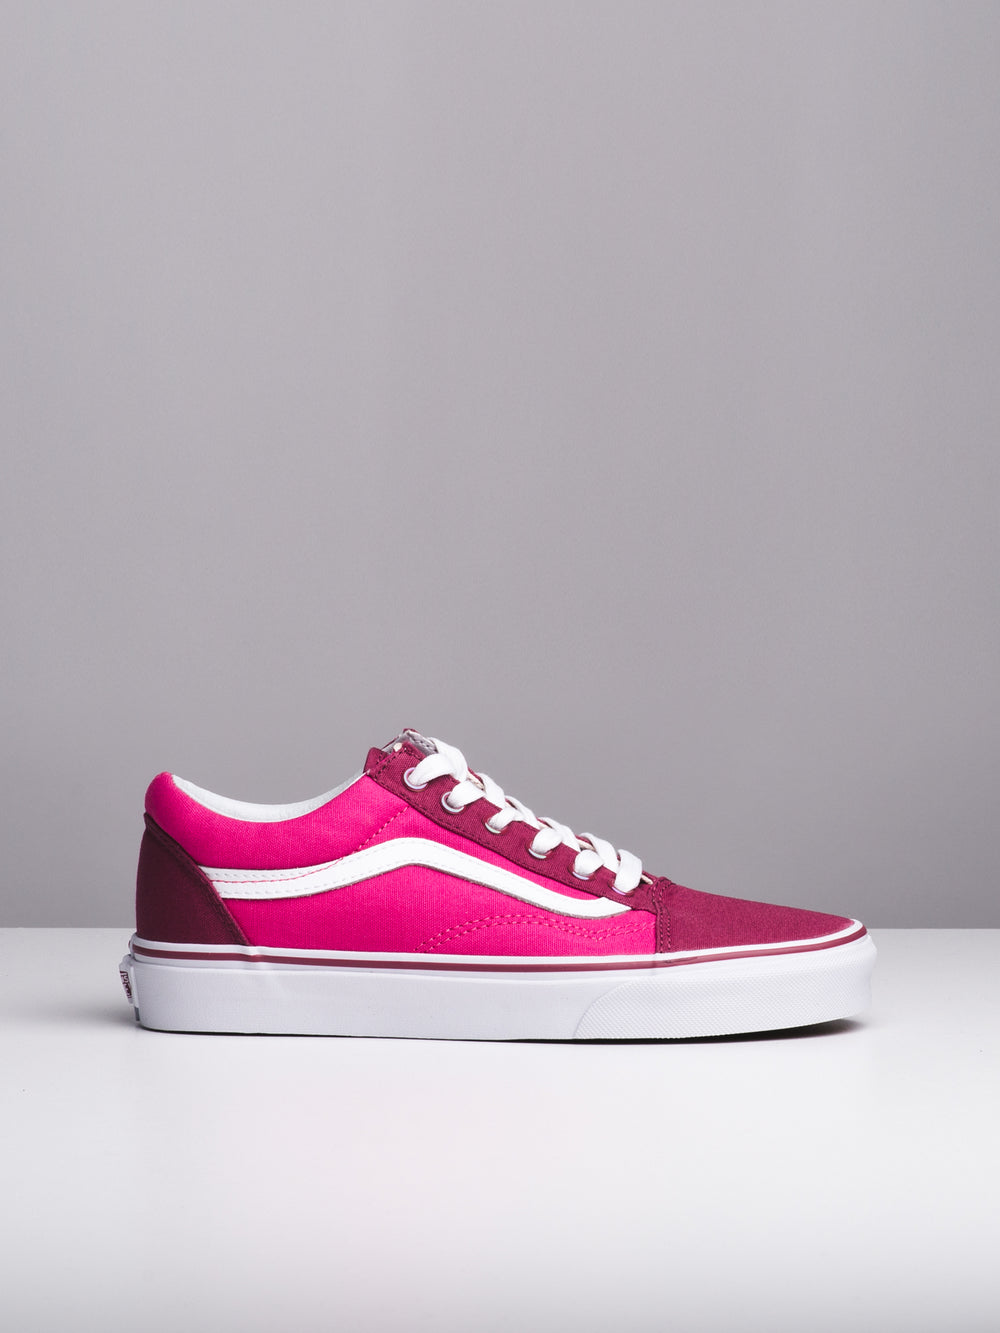 WOMENS OLD SKOOL - ROSE/MAGENTA - CLEARANCE